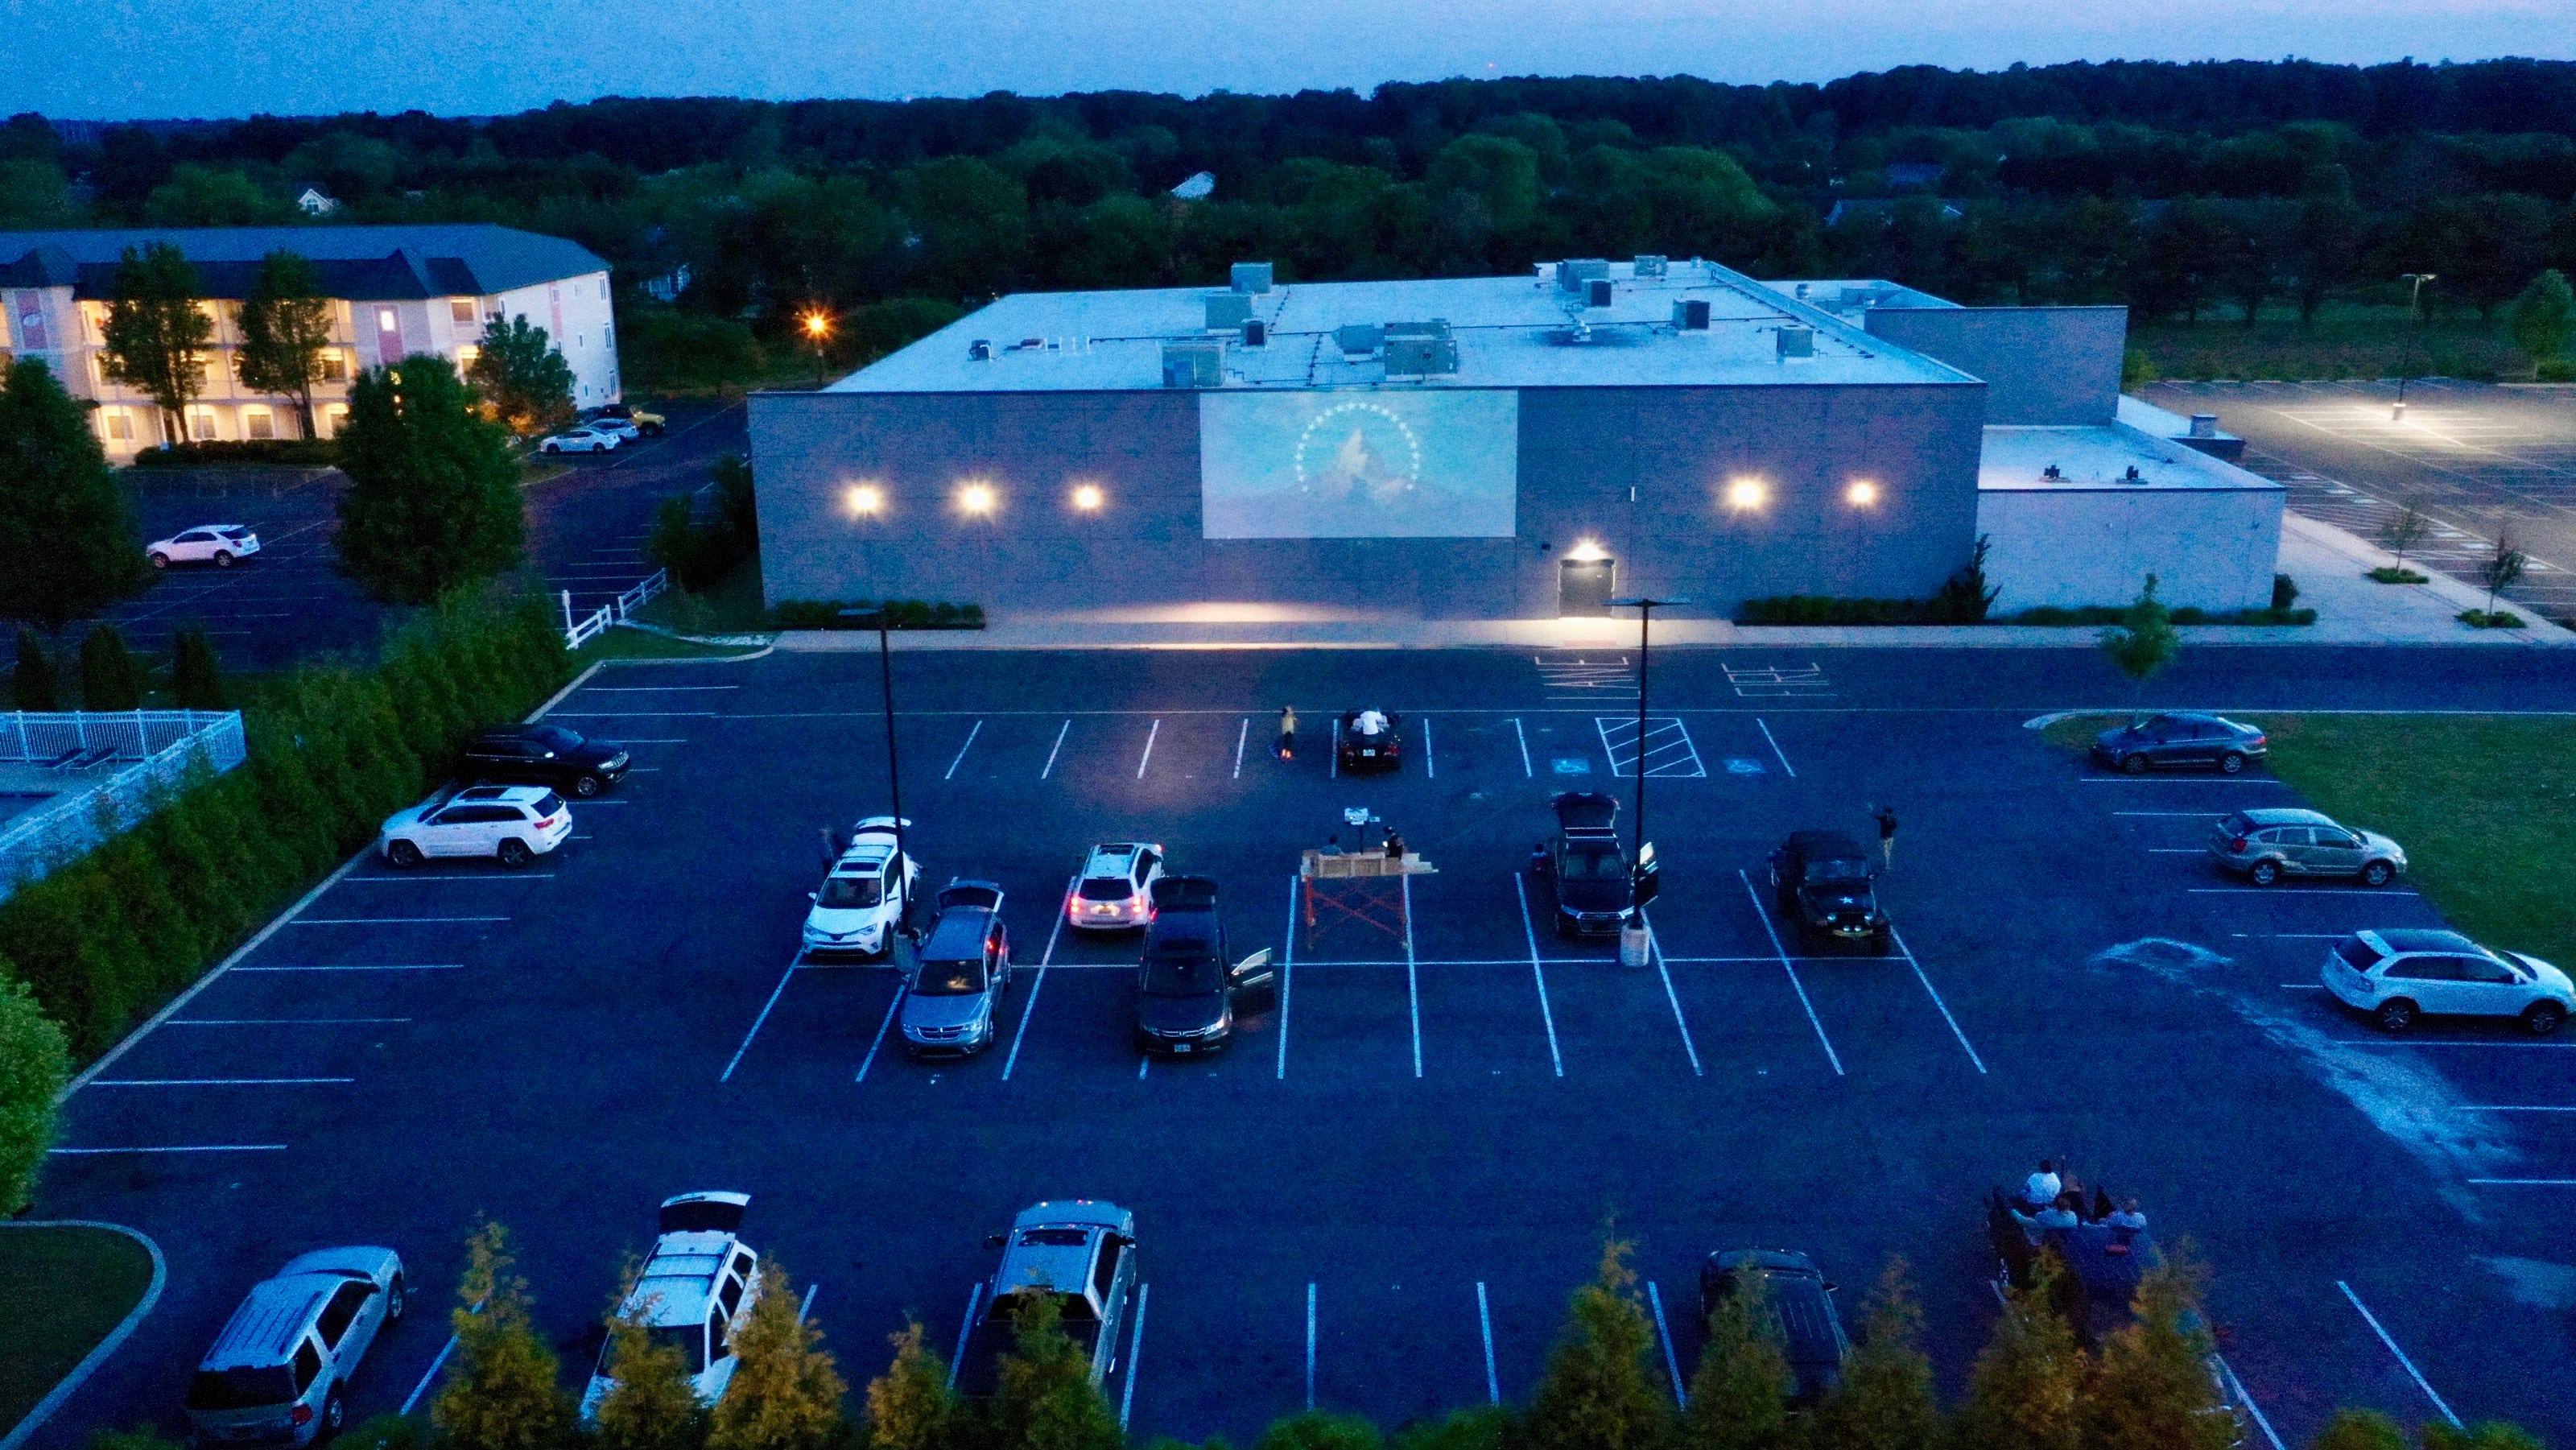 Drive In Movies Return To Delaware As Social Distancing Resurrects Memories